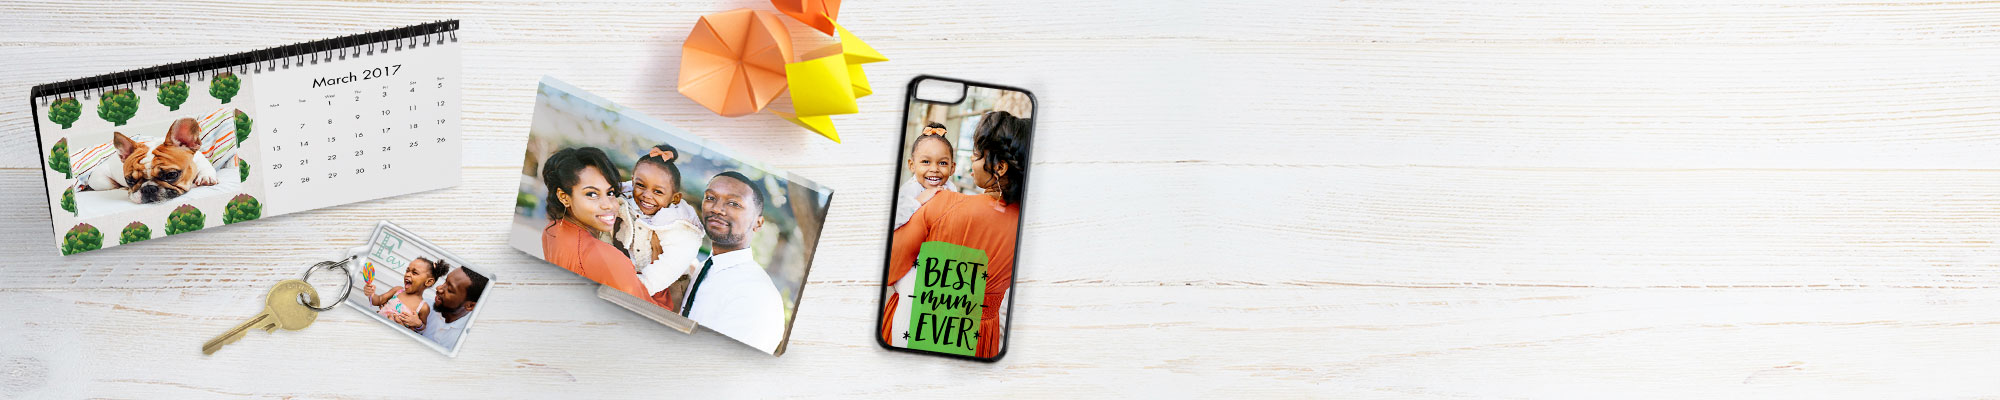 Shop All Products : Create a Mother's day personalised present with photo cards and gifts from Snapfish.